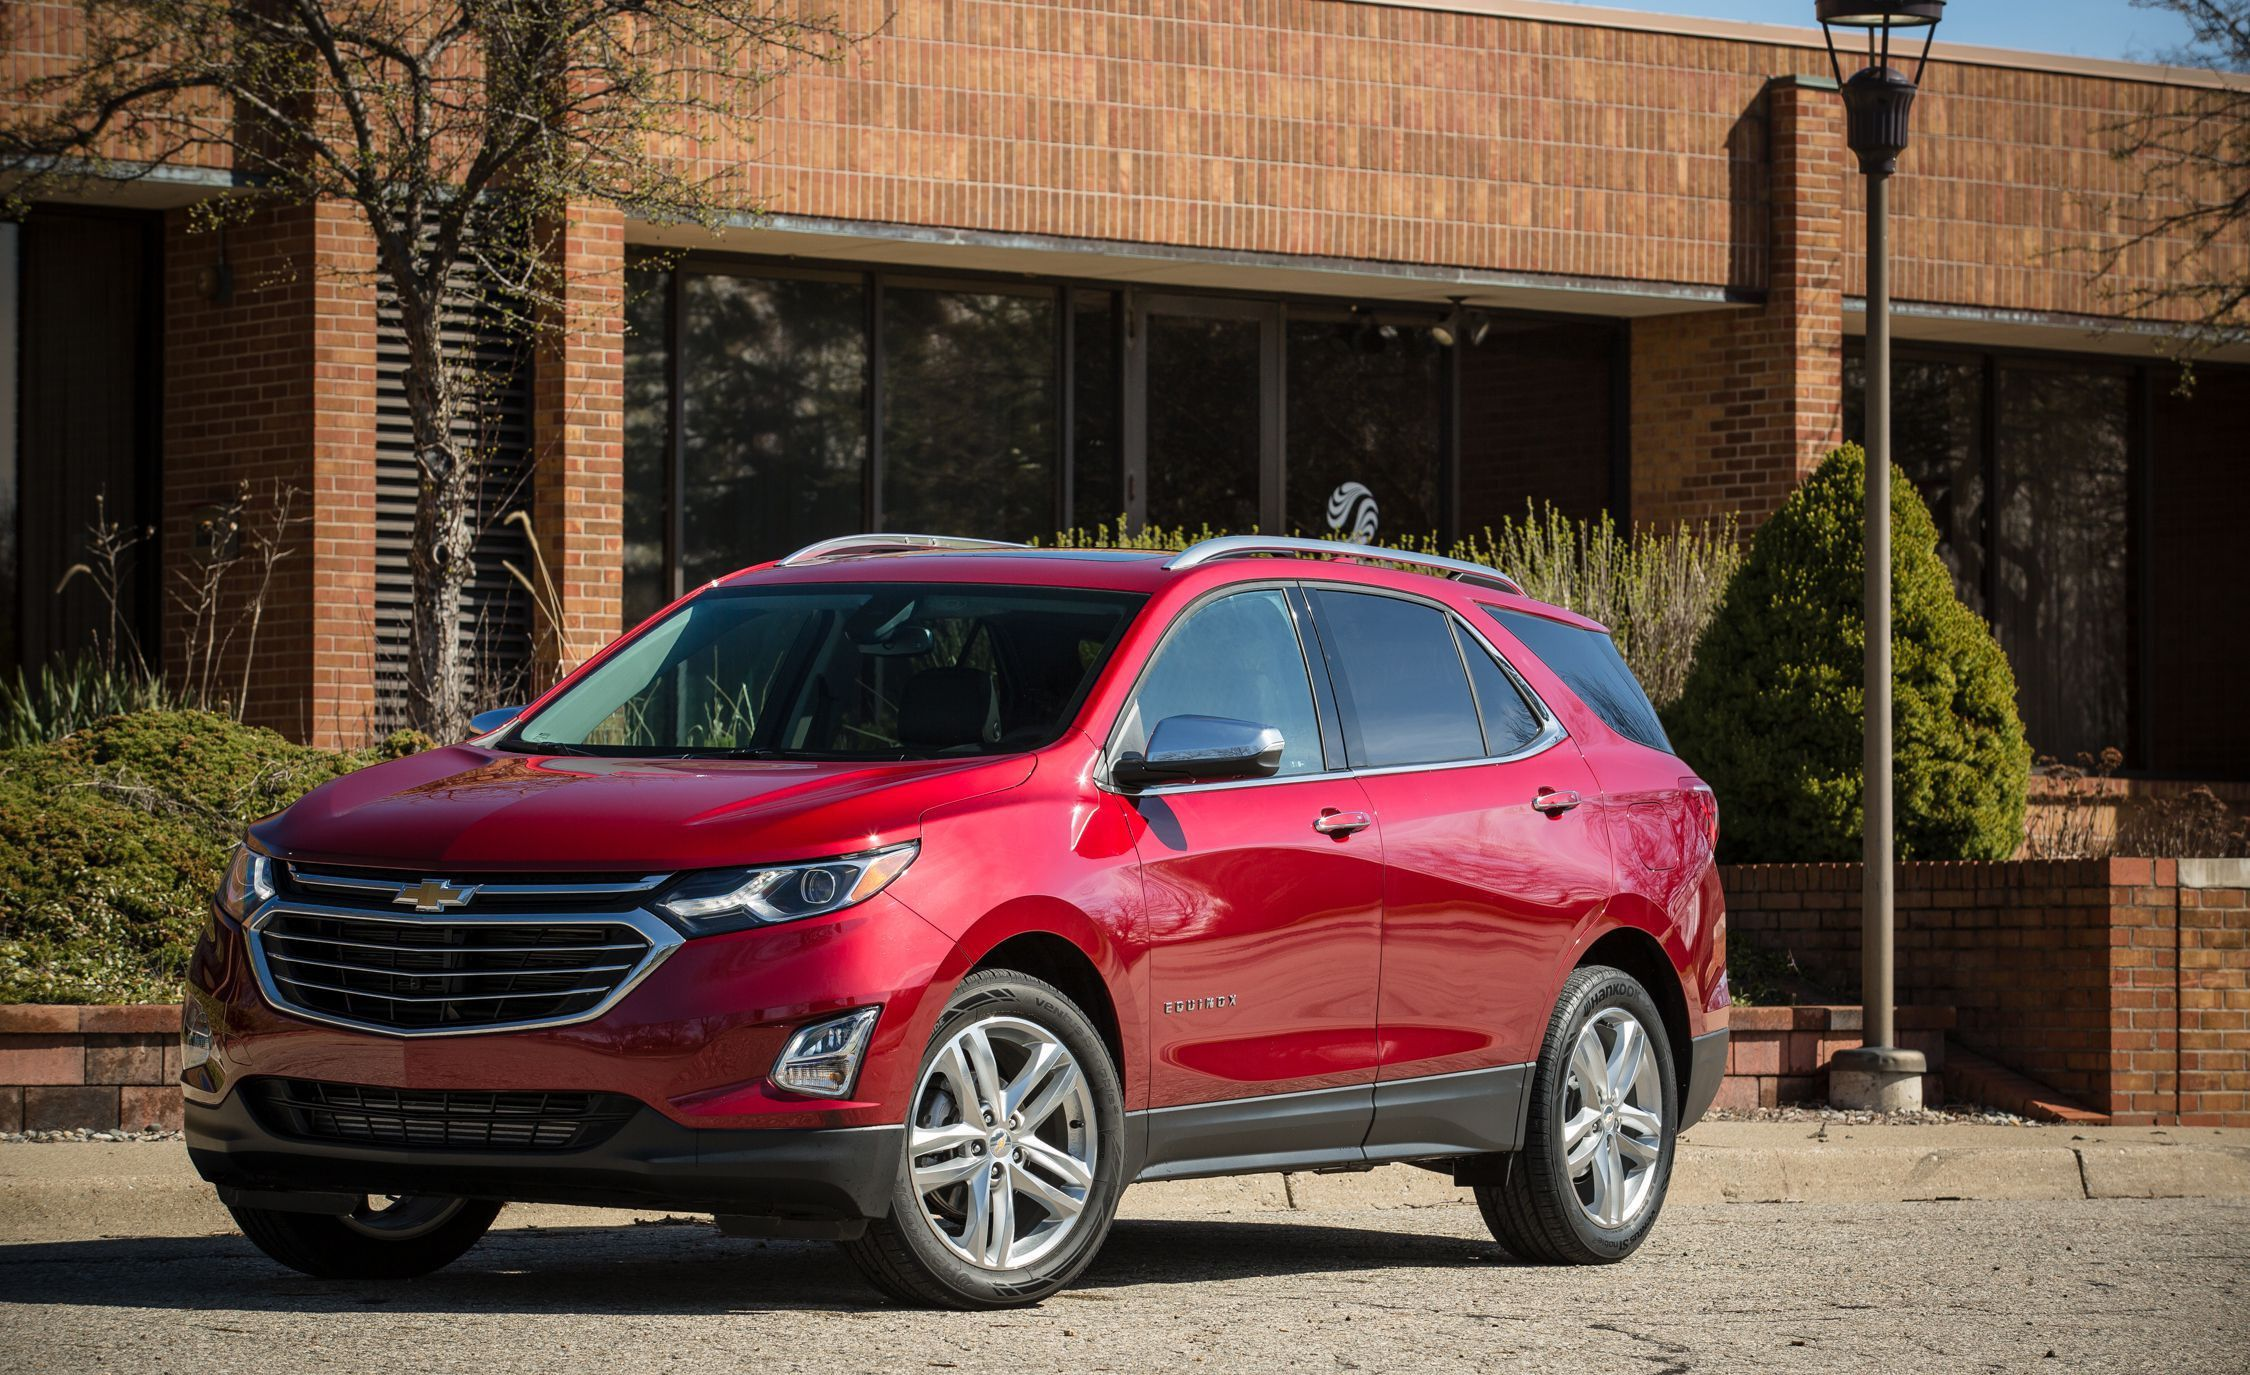 Chevy Build And Price >> 2018 Chevy Equinox Build And Price